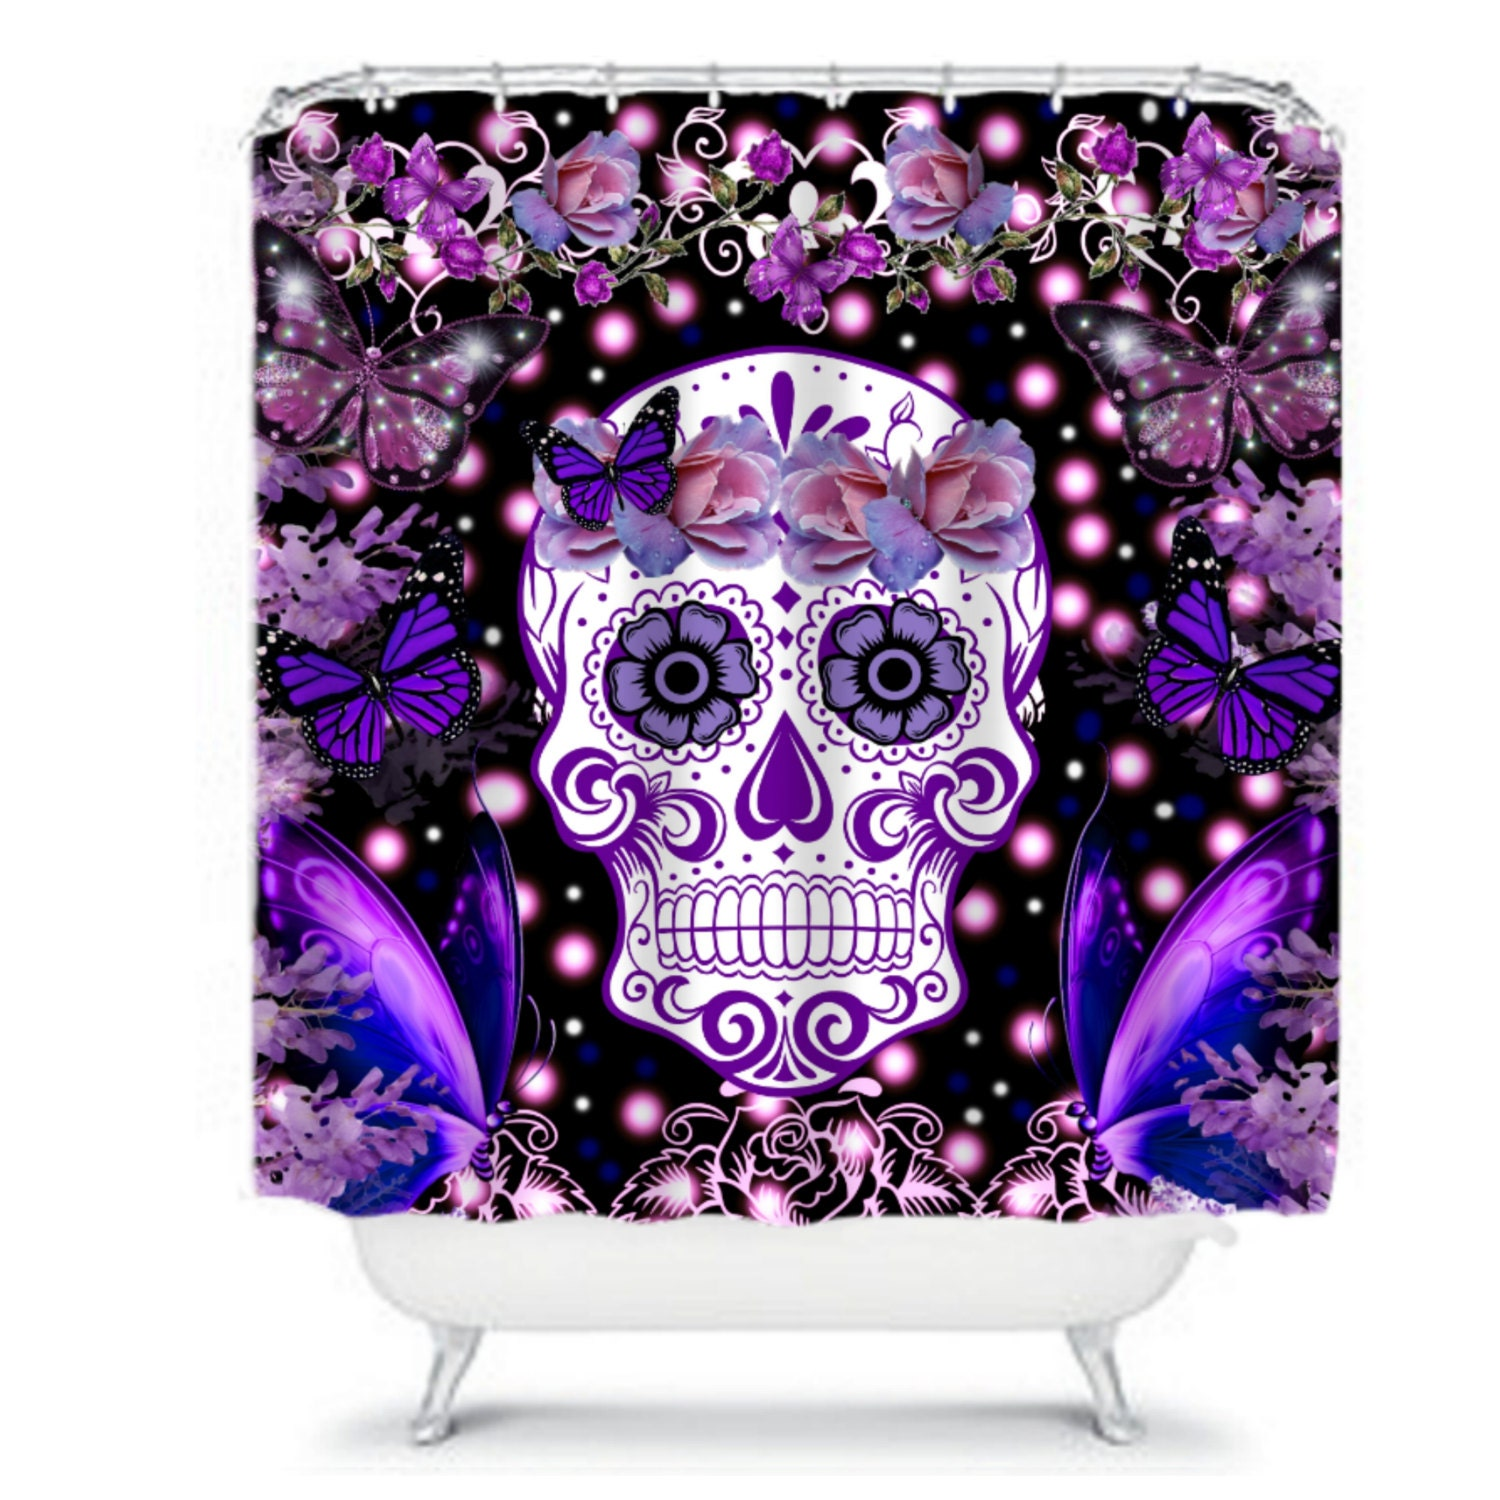 shower curtain sugar skull butterflies flowers roses purples. Black Bedroom Furniture Sets. Home Design Ideas